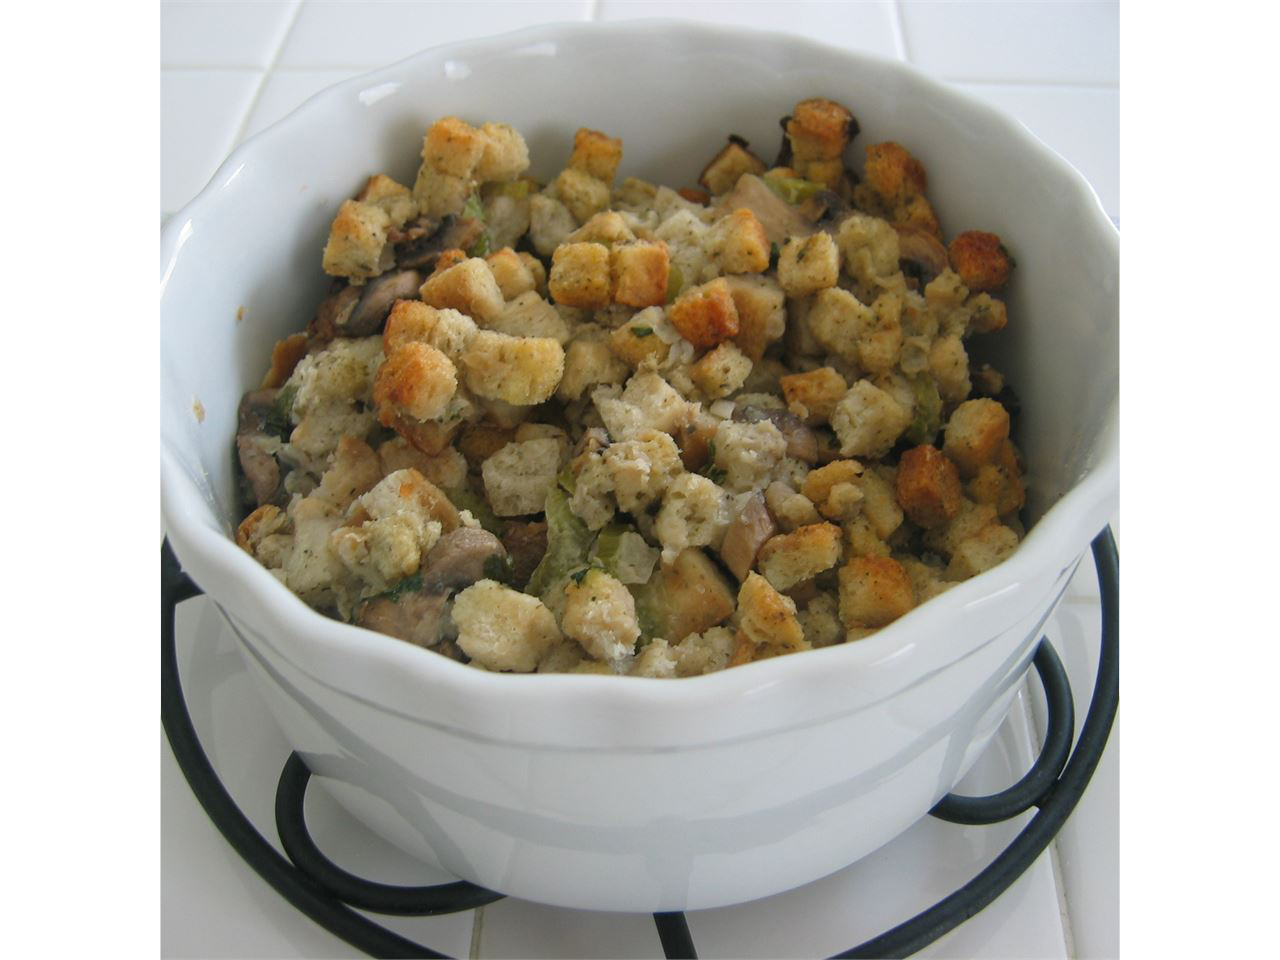 Slow Cooker Stuffing in a white bowl